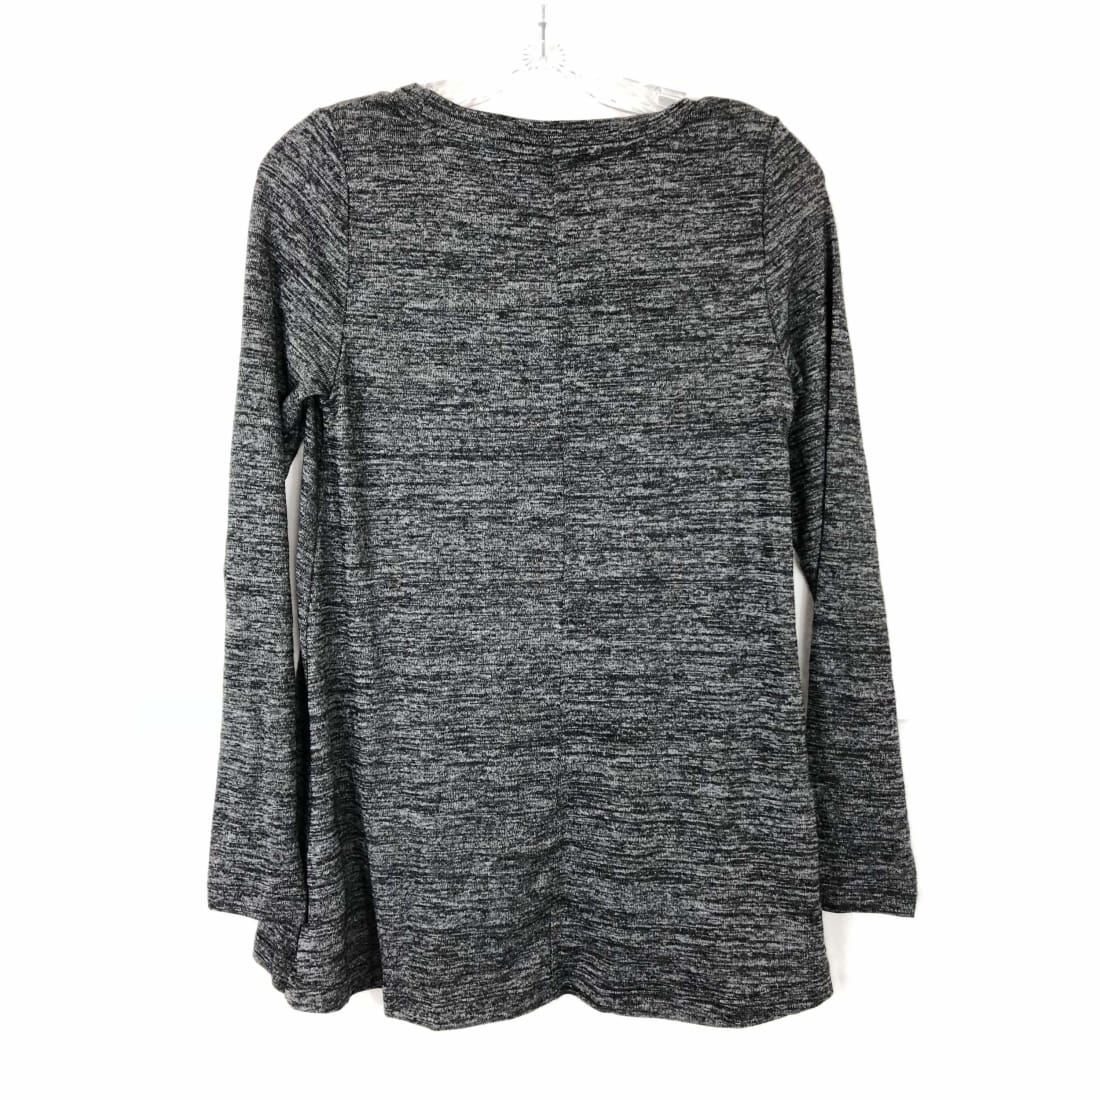 Jones New York Womens Knit Tunic Top Long Sleeve High-Low Hem Tops & Blouses